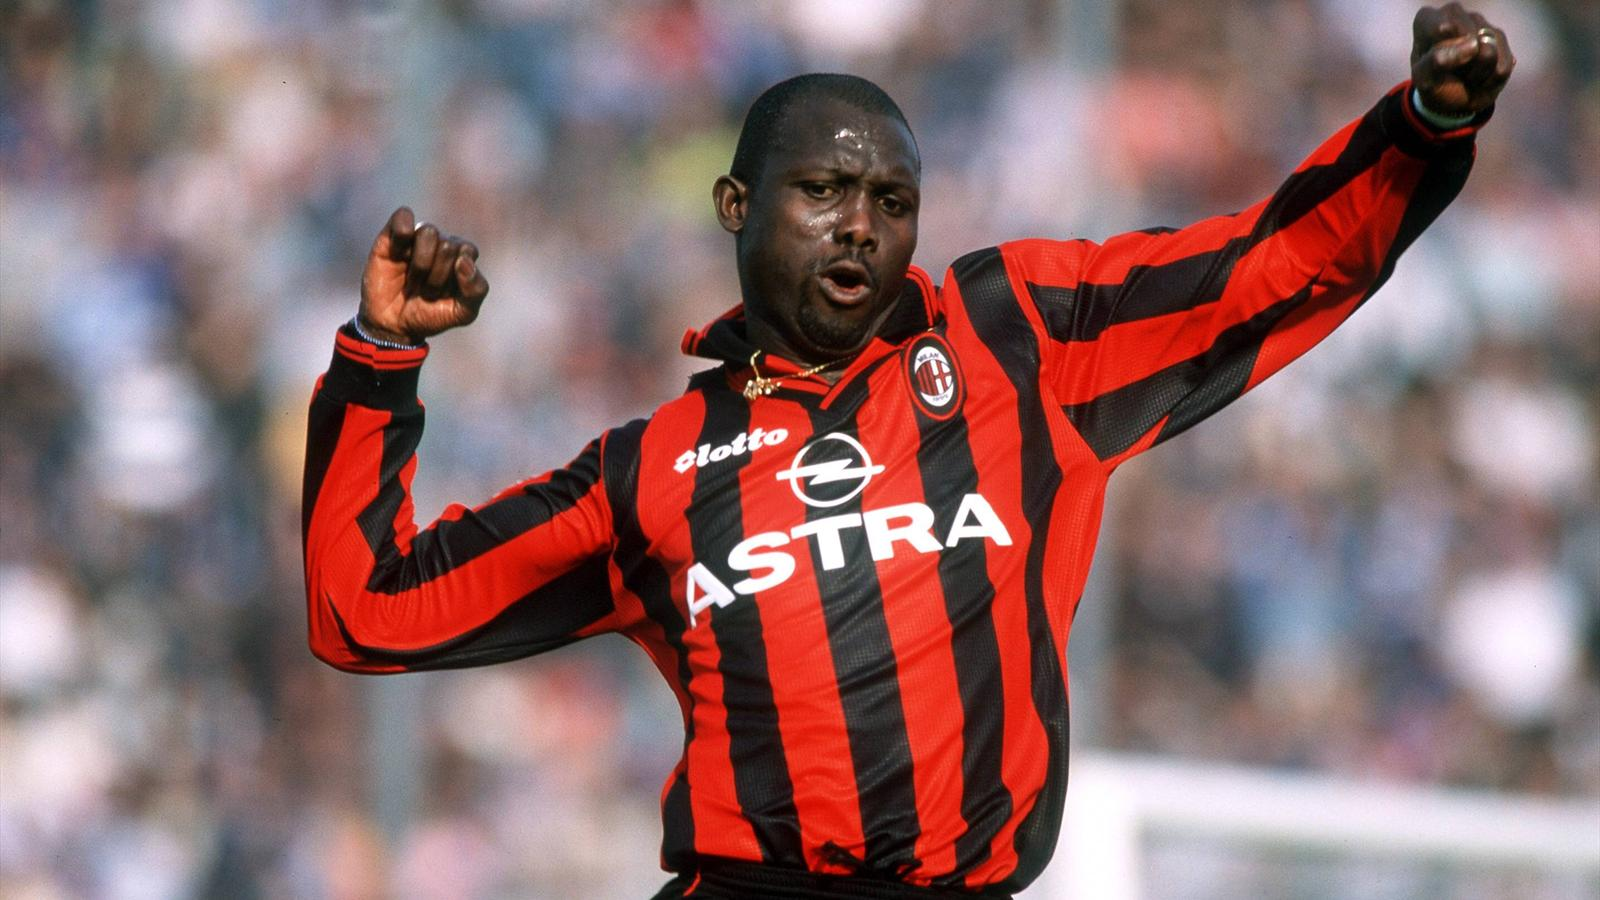 Hot Sheet UrbanGlass Pictures of george weah